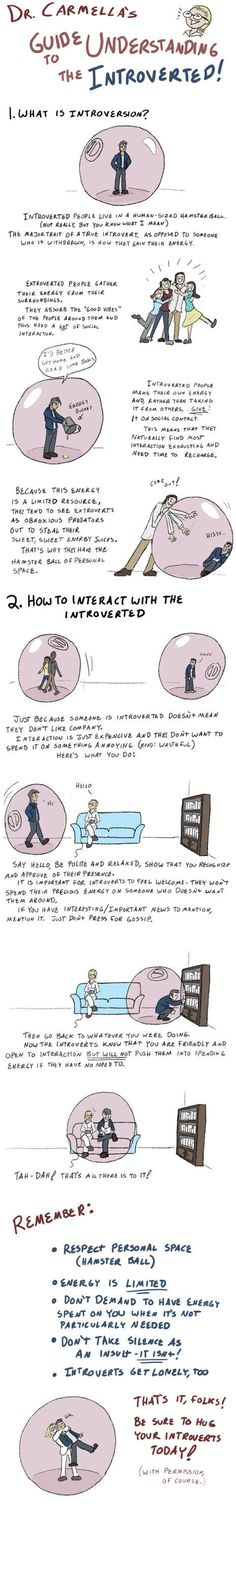 Understanding the Introverted. - Explications introvertis-extravertis.